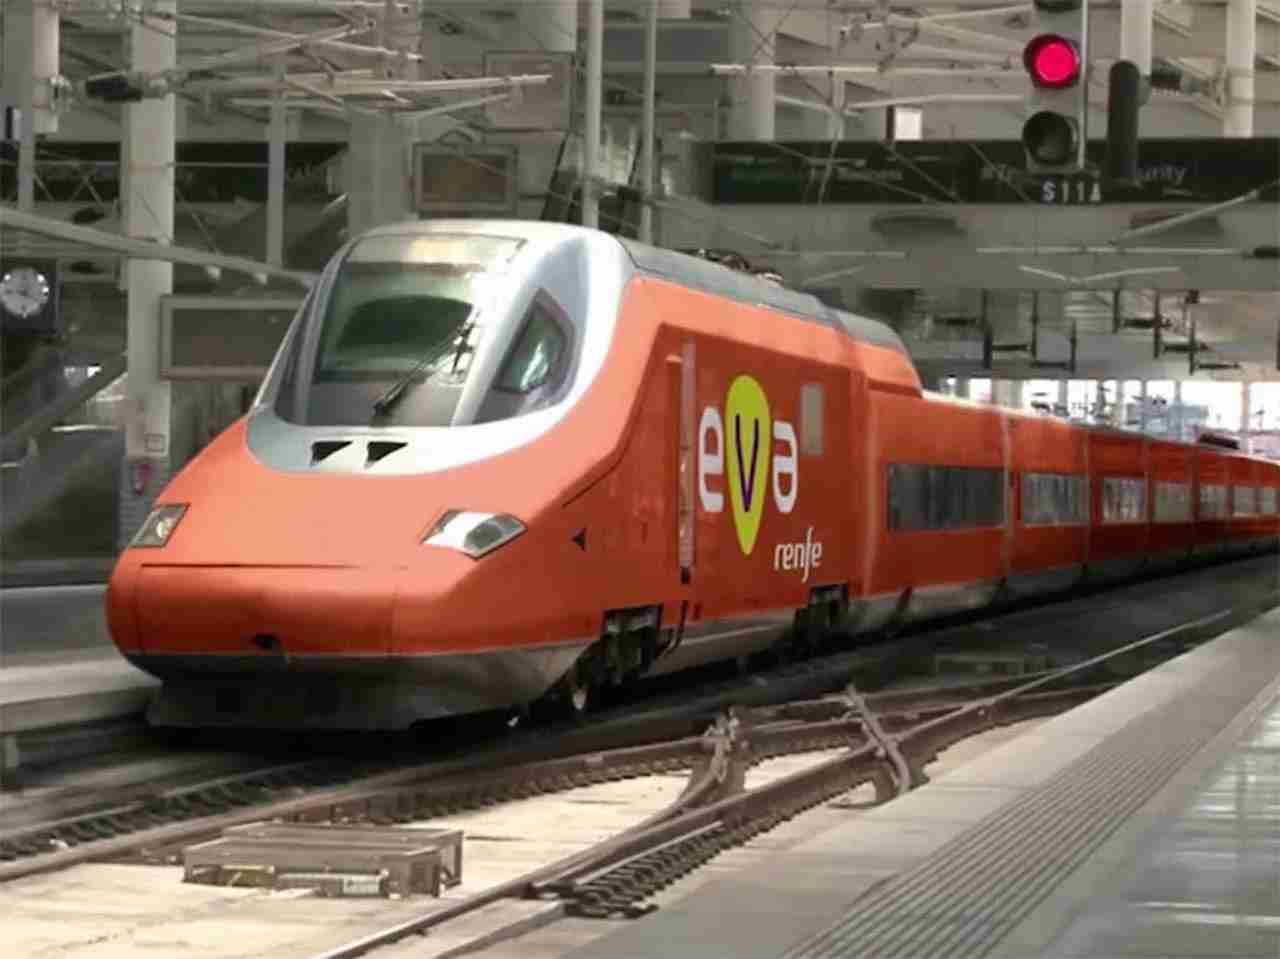 RENFE will be unveiling Eva, a smart train concept that will introduce a high speed service between Madrid and Barcelona in 2019. (Photo courtesy RENFE)